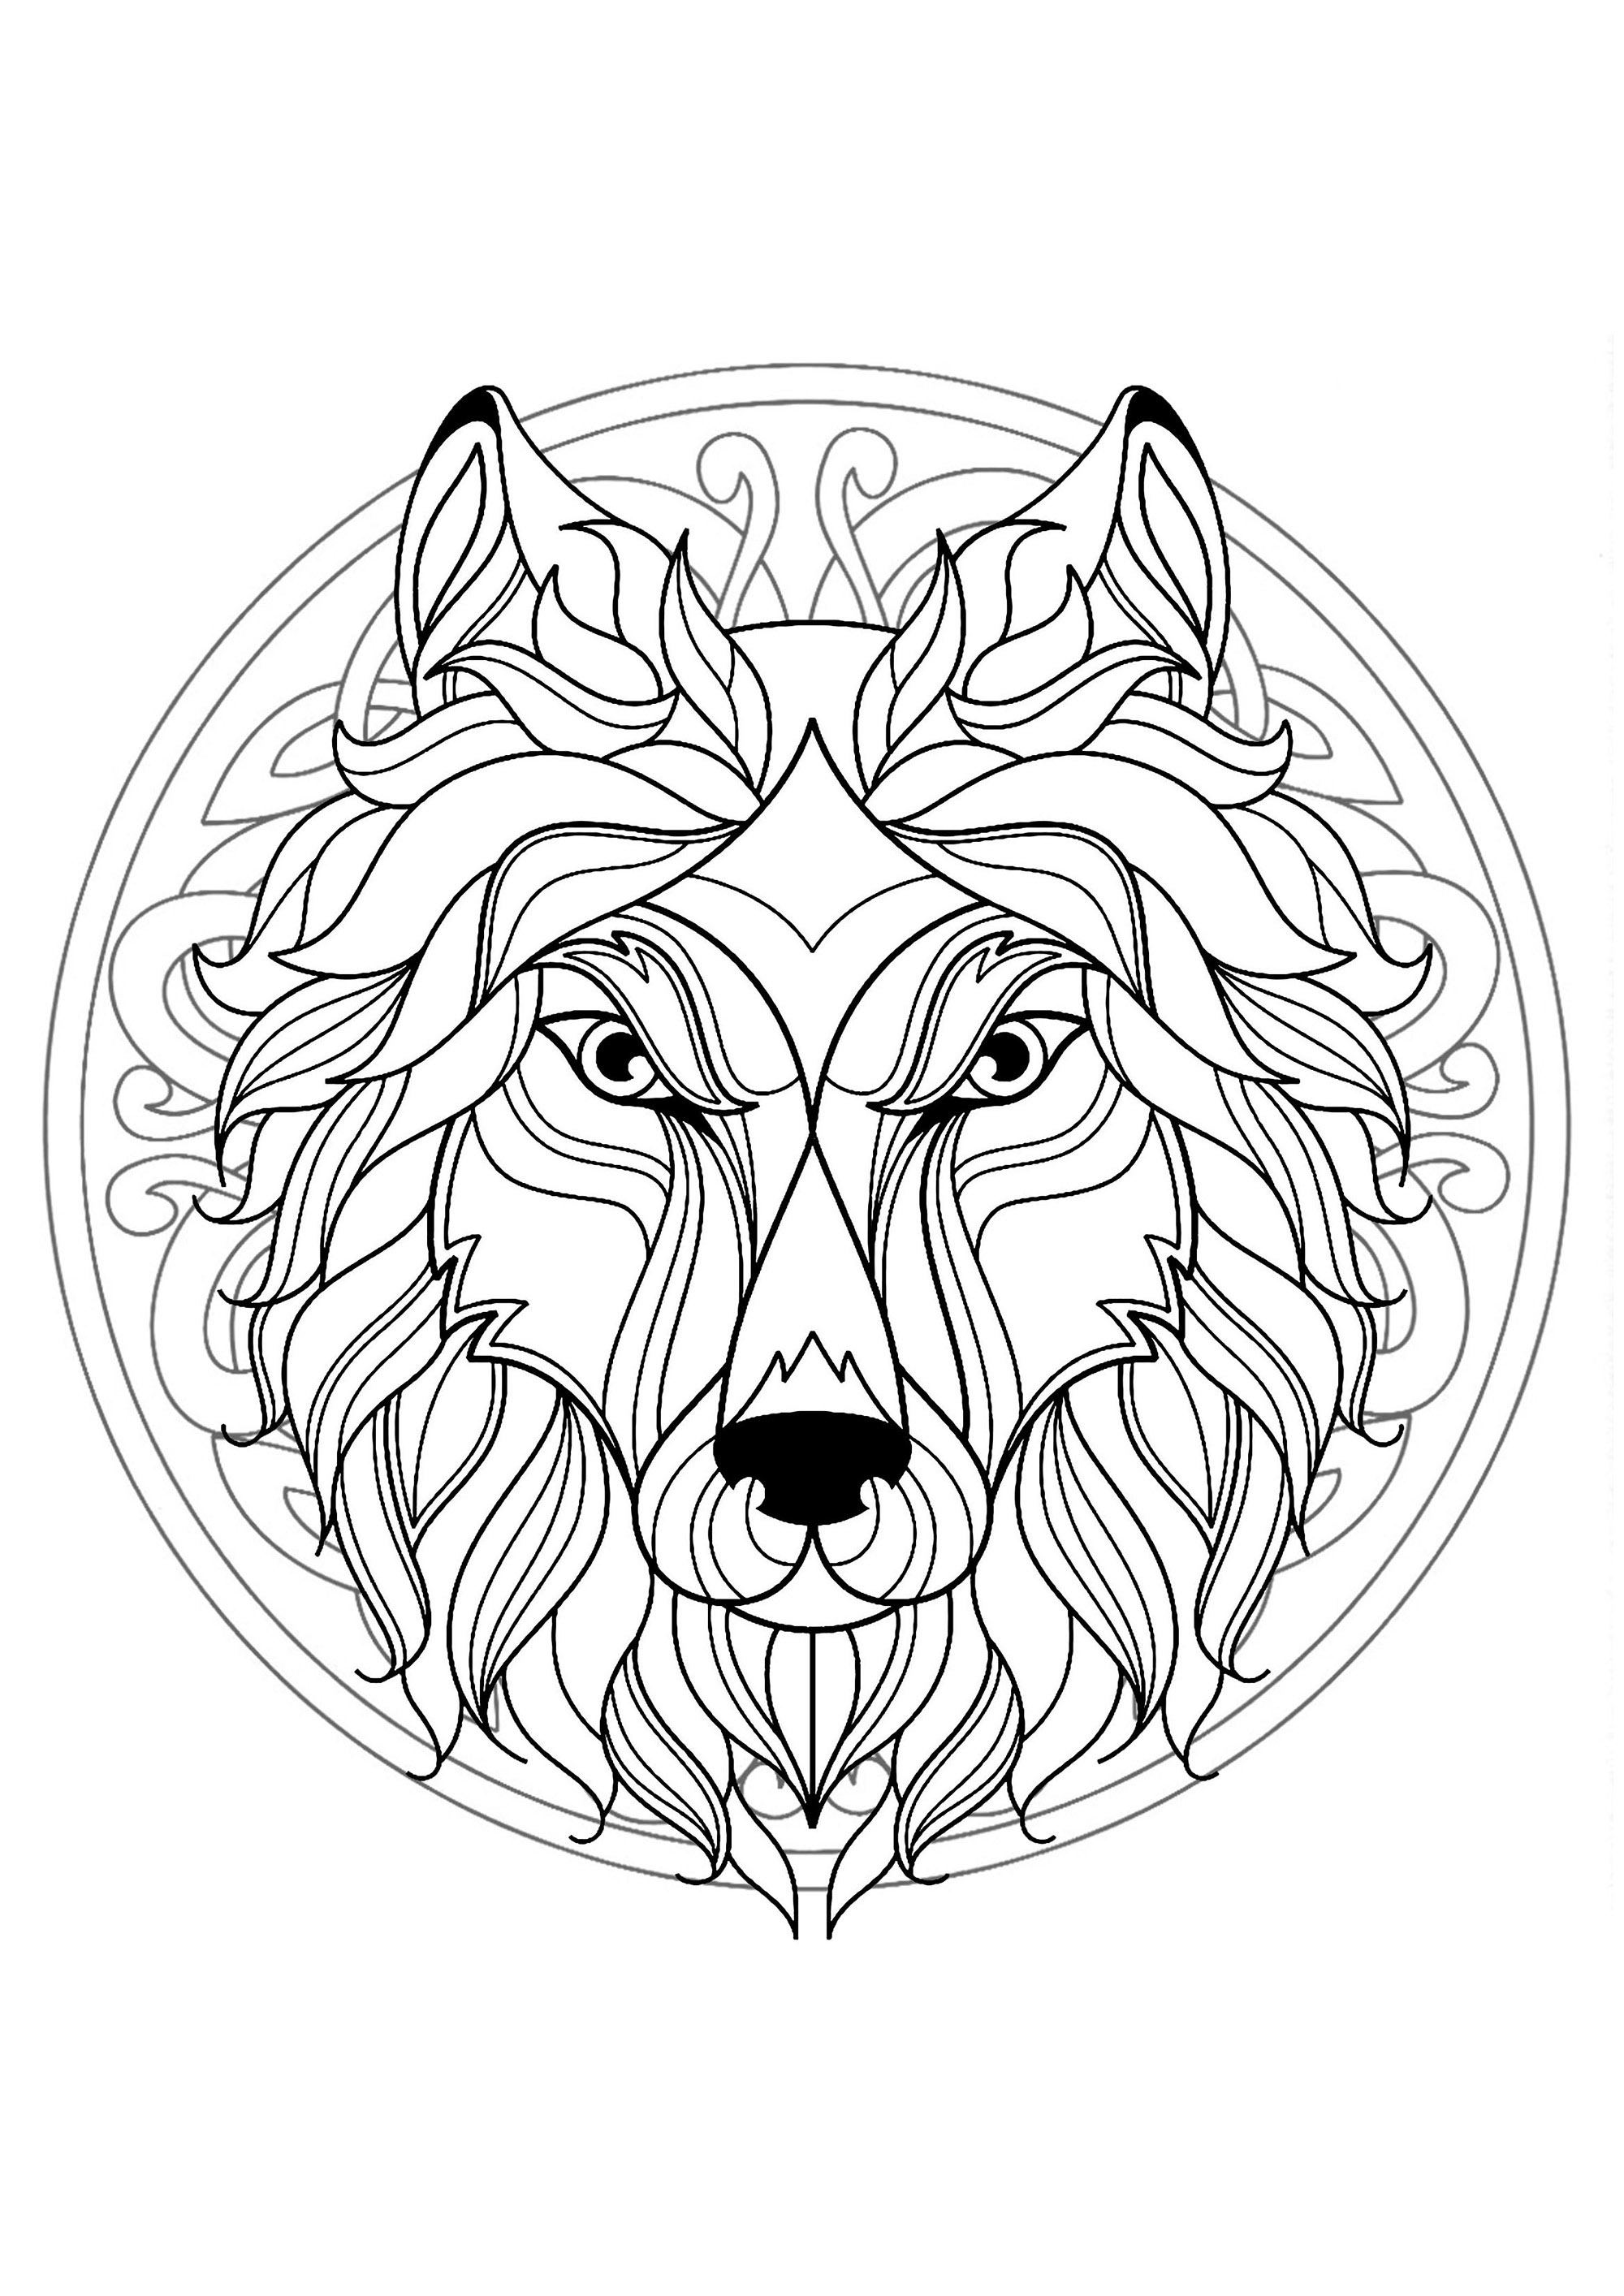 Complex Mandala Coloring Page With Wolf Head 4 Difficult